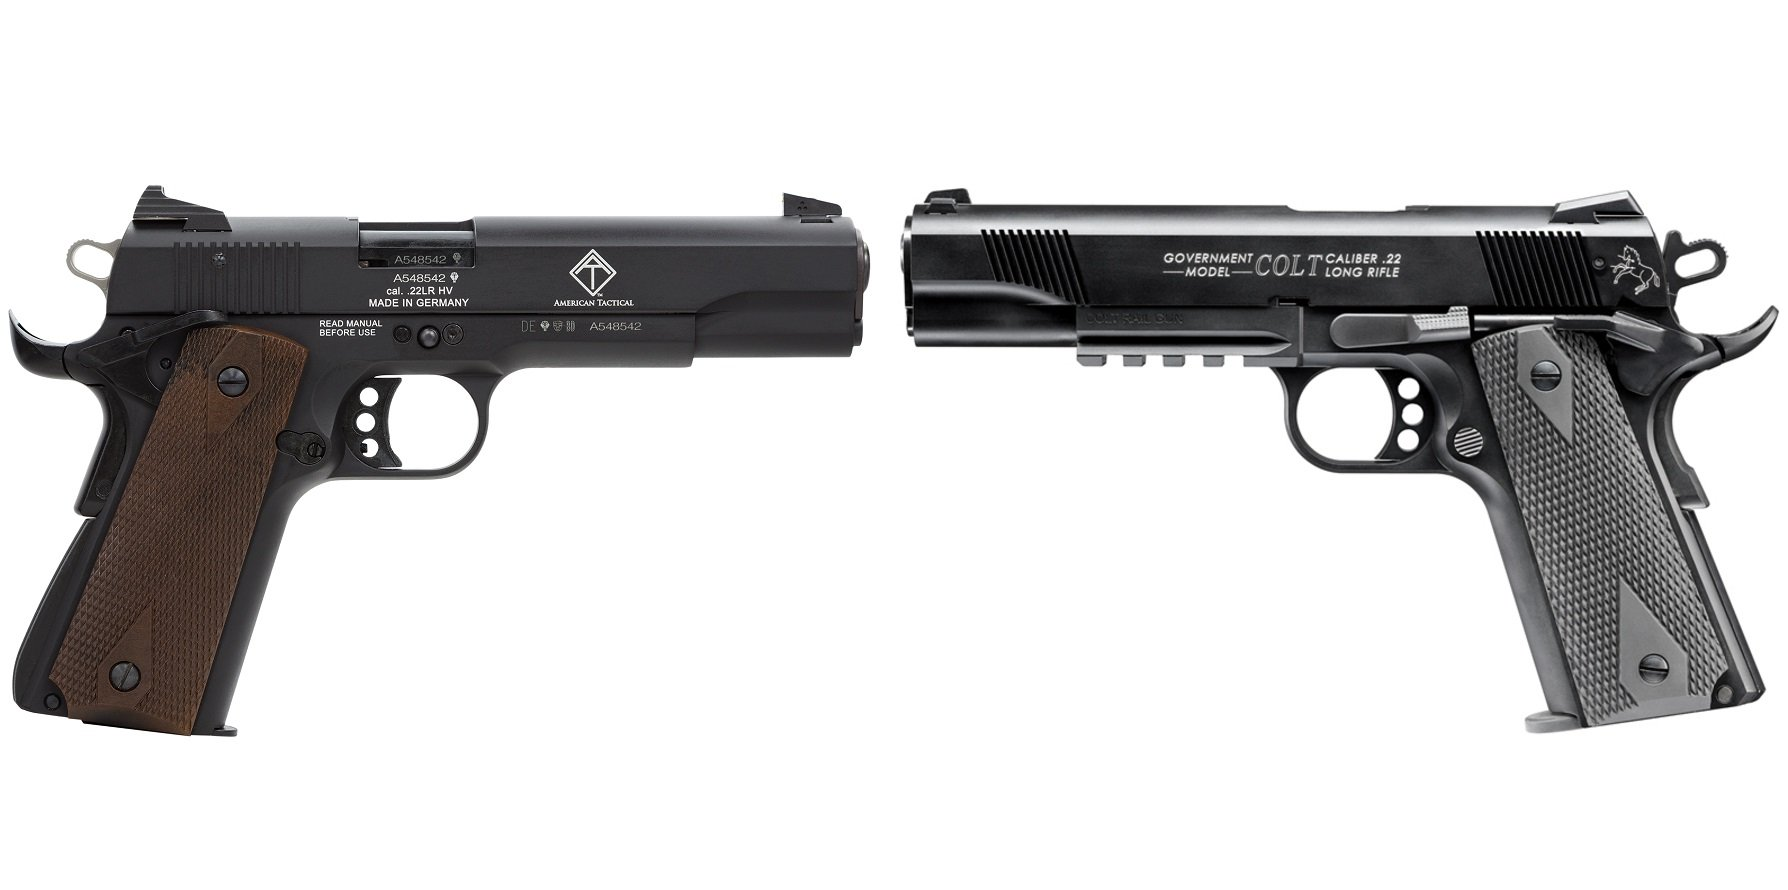 1911 22 LR Handguns from $176 12 @ Wikiarms